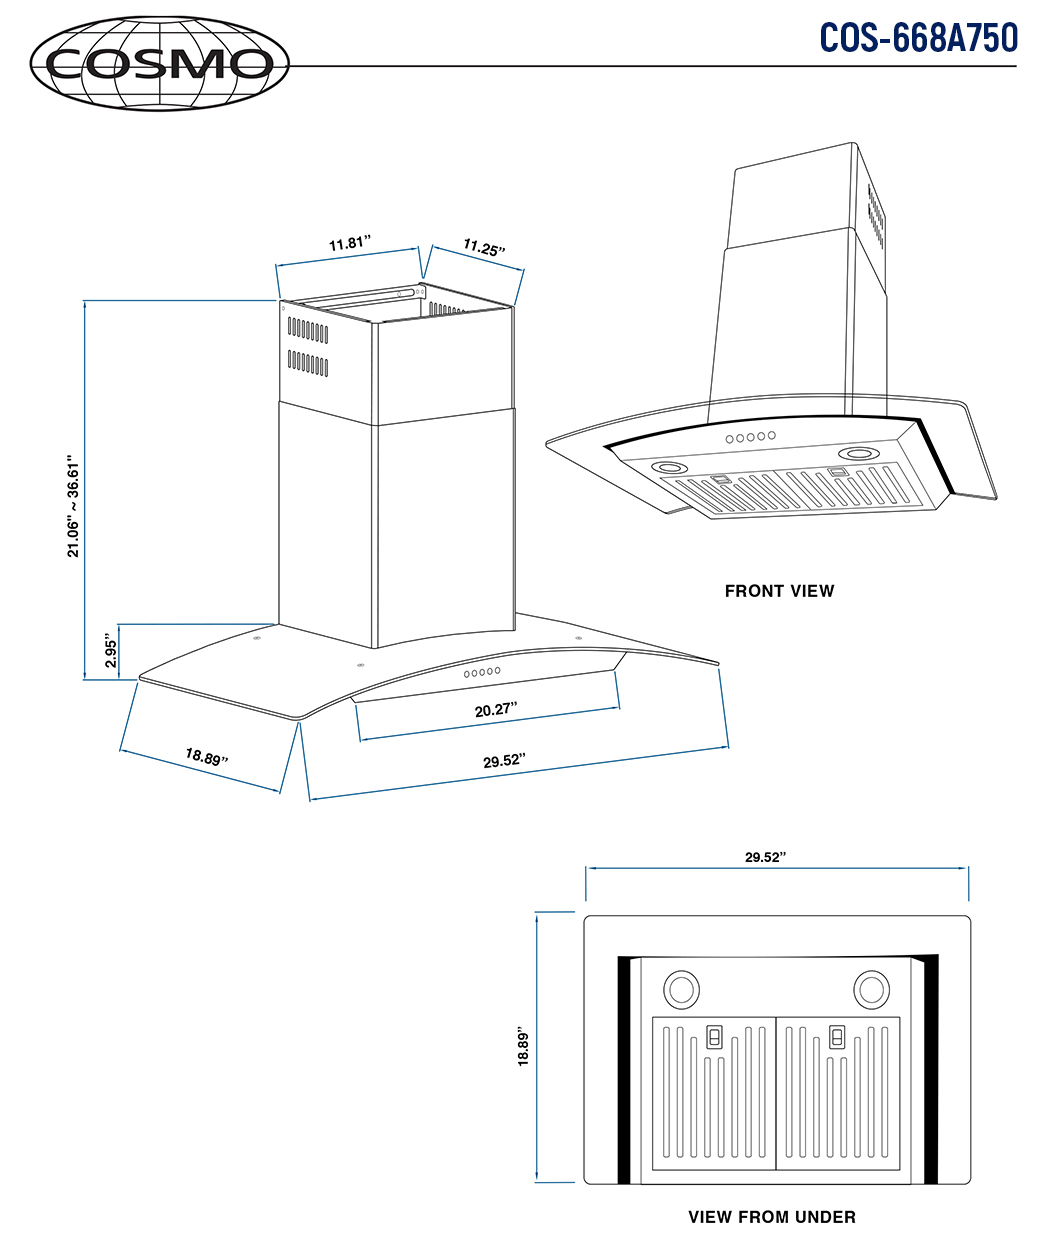 30 In Wall Mount Range Hood Cosmo Appliances Cos 668a750 Dl